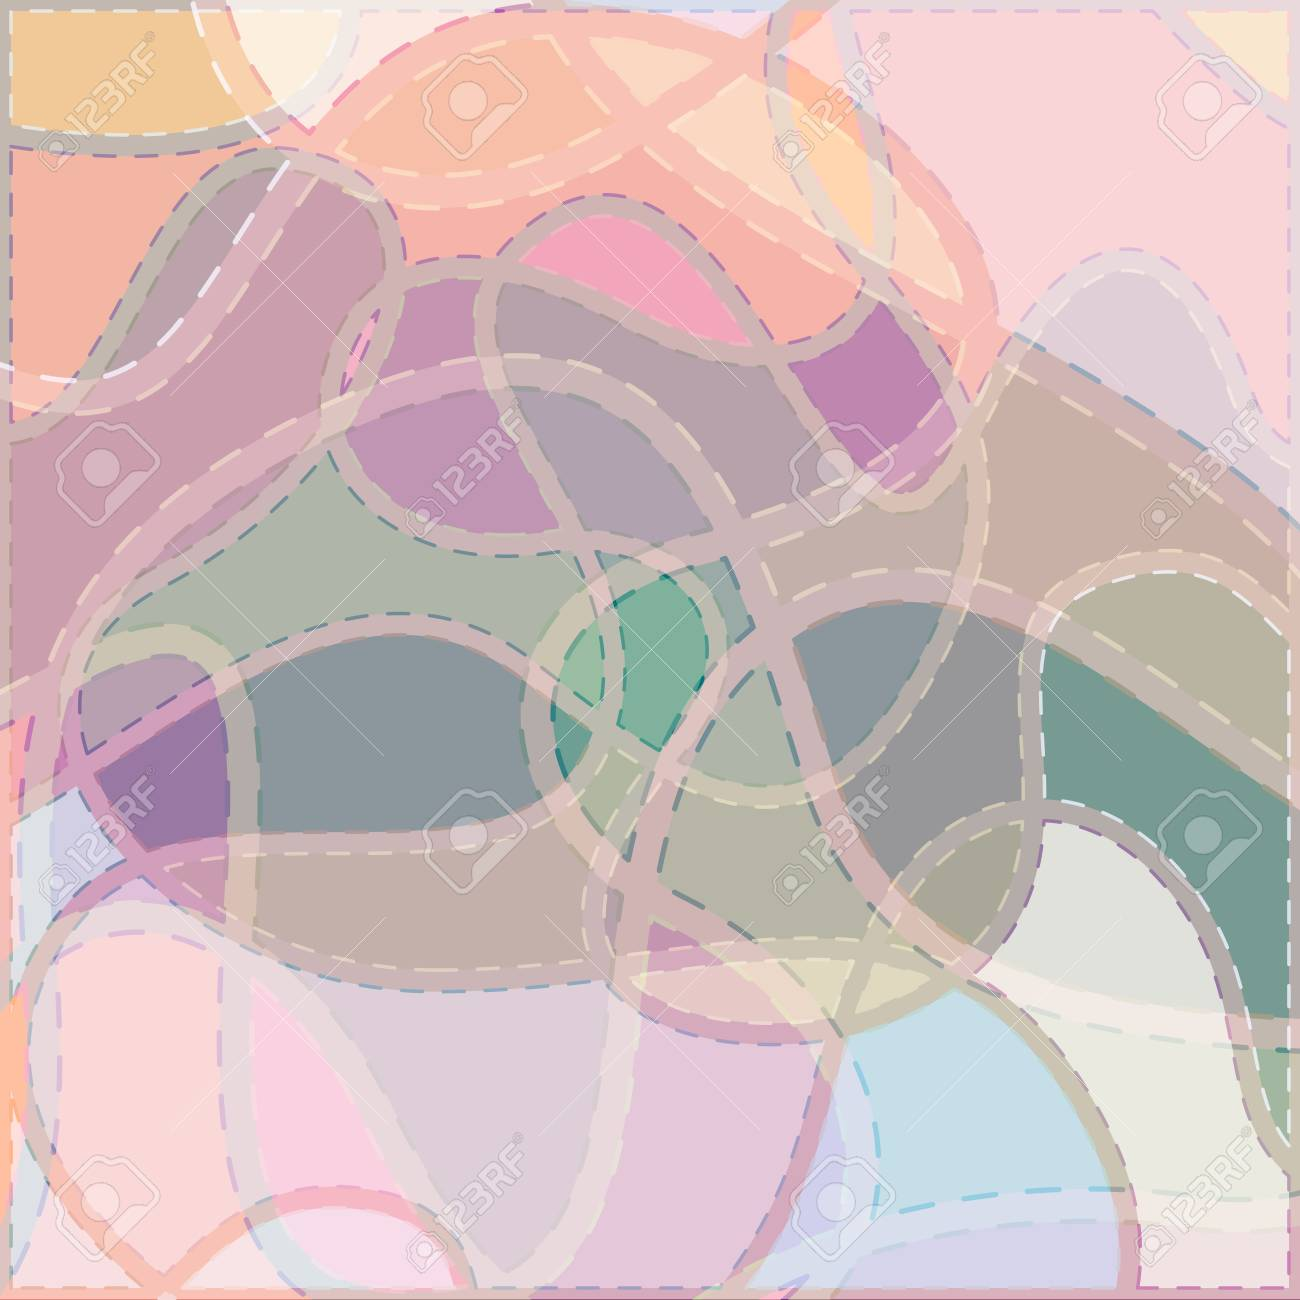 Color Curved Seams on a Colorful Background, Abstract Pattern, Vector Illustration Stock Vector - 22405884